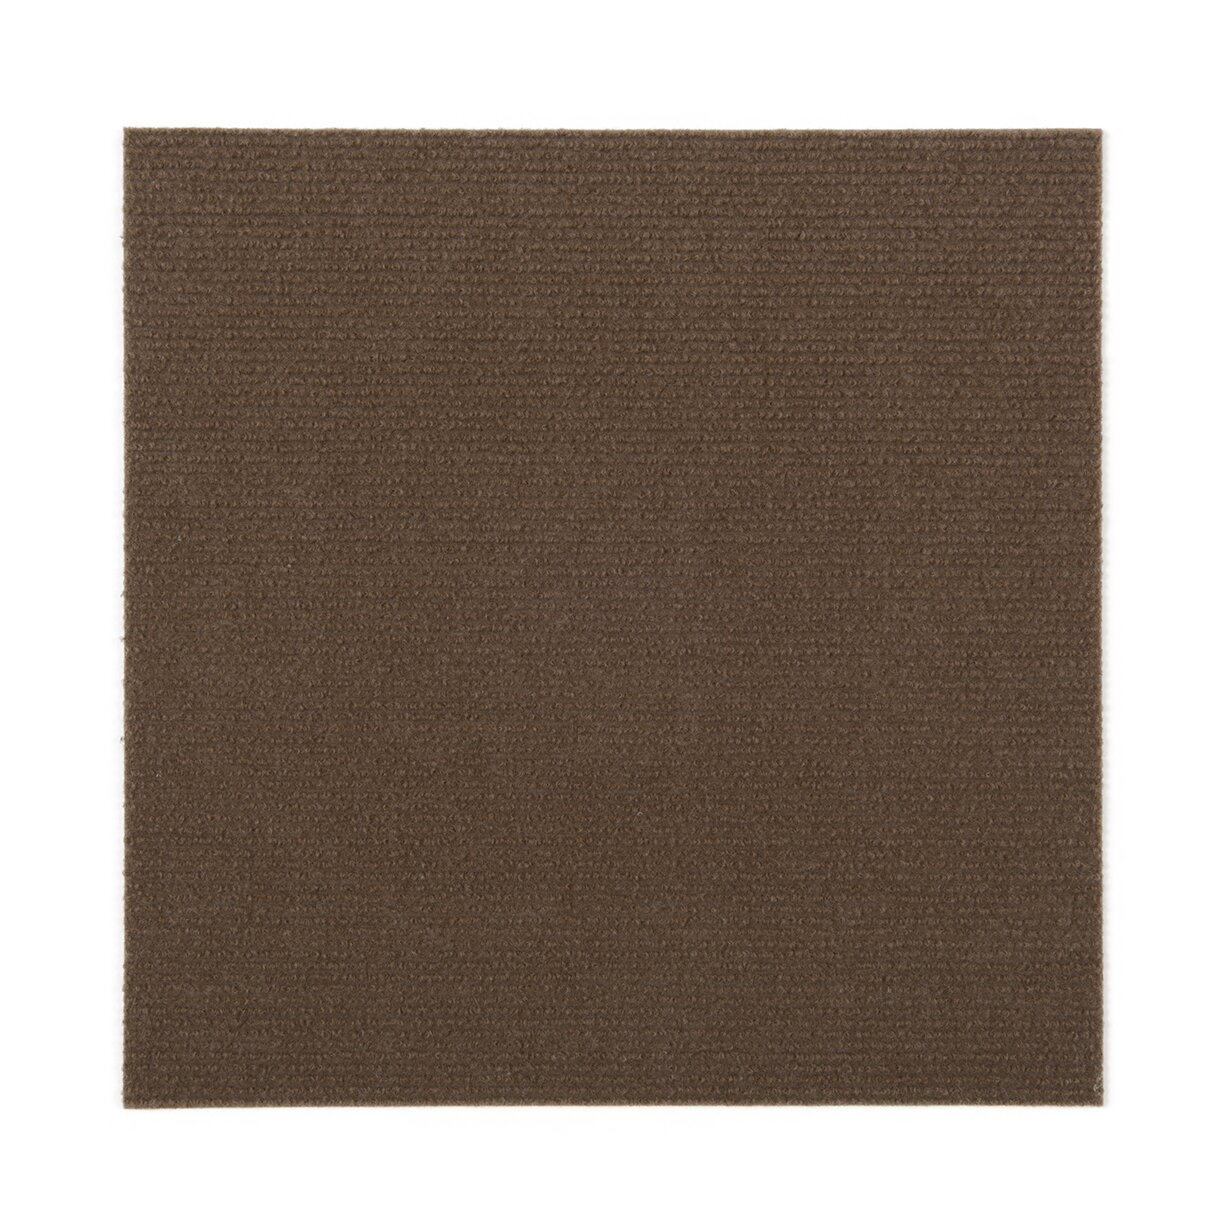 Triluc 12 x 12 area rug in brown wayfair for What size rug for 12x12 room